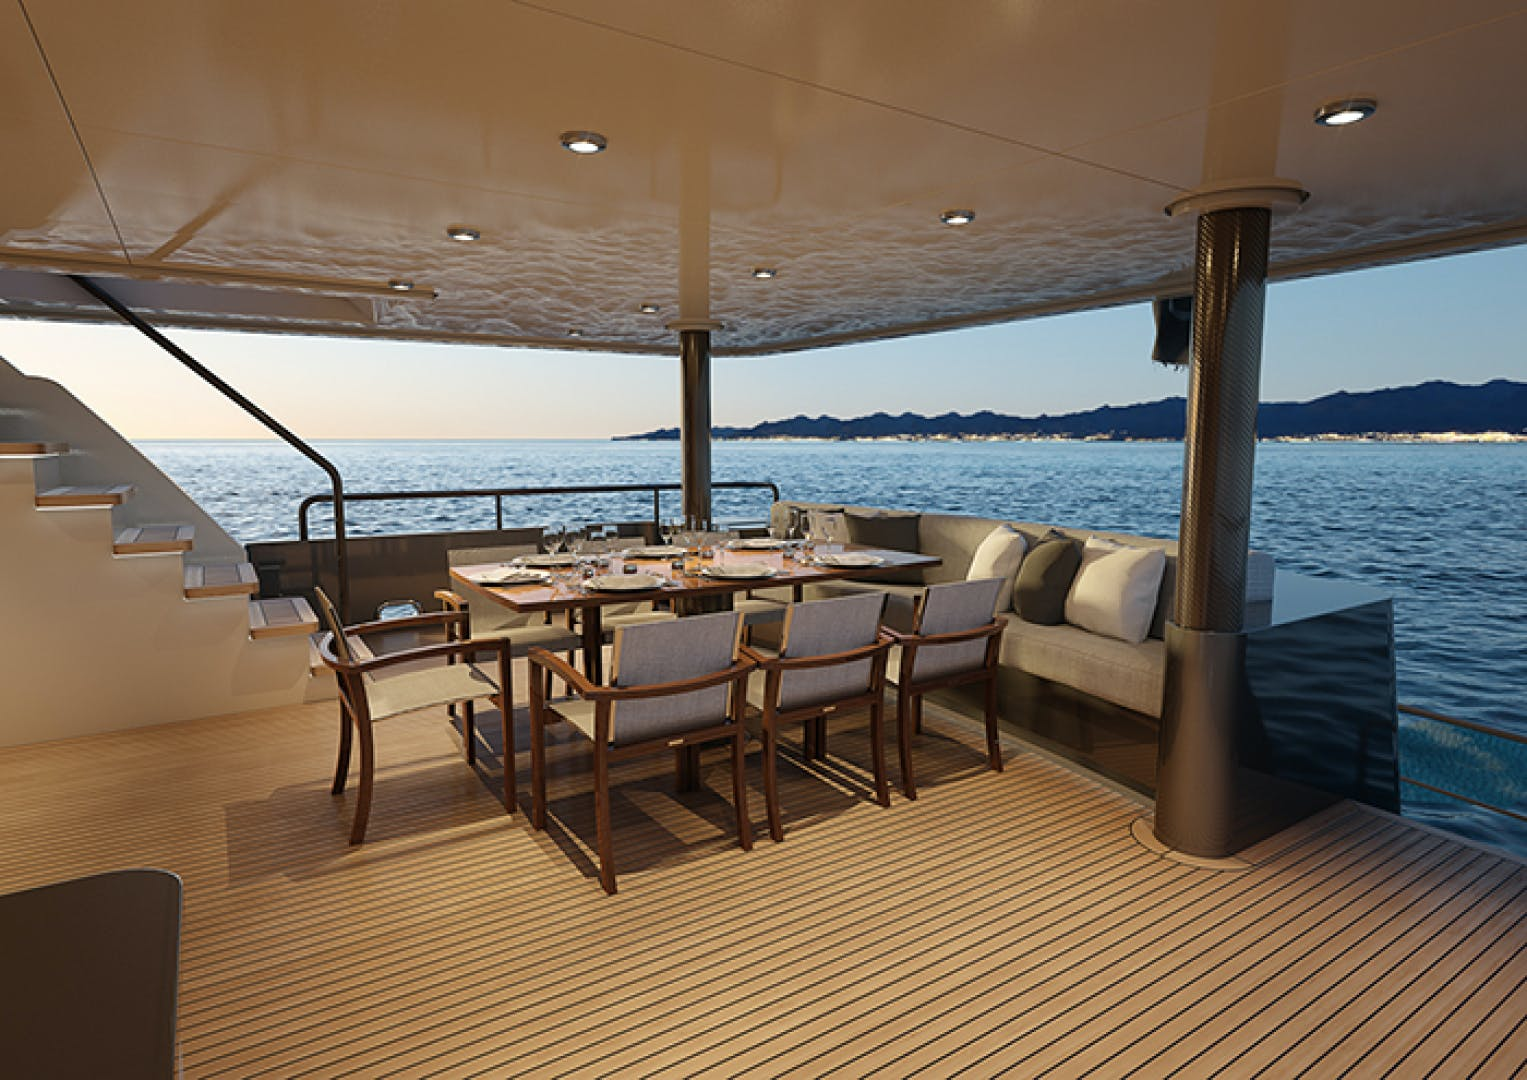 2022 Crescent 110' 110 Fast Pilothouse Yacht CRESCENT 110 | Picture 5 of 13